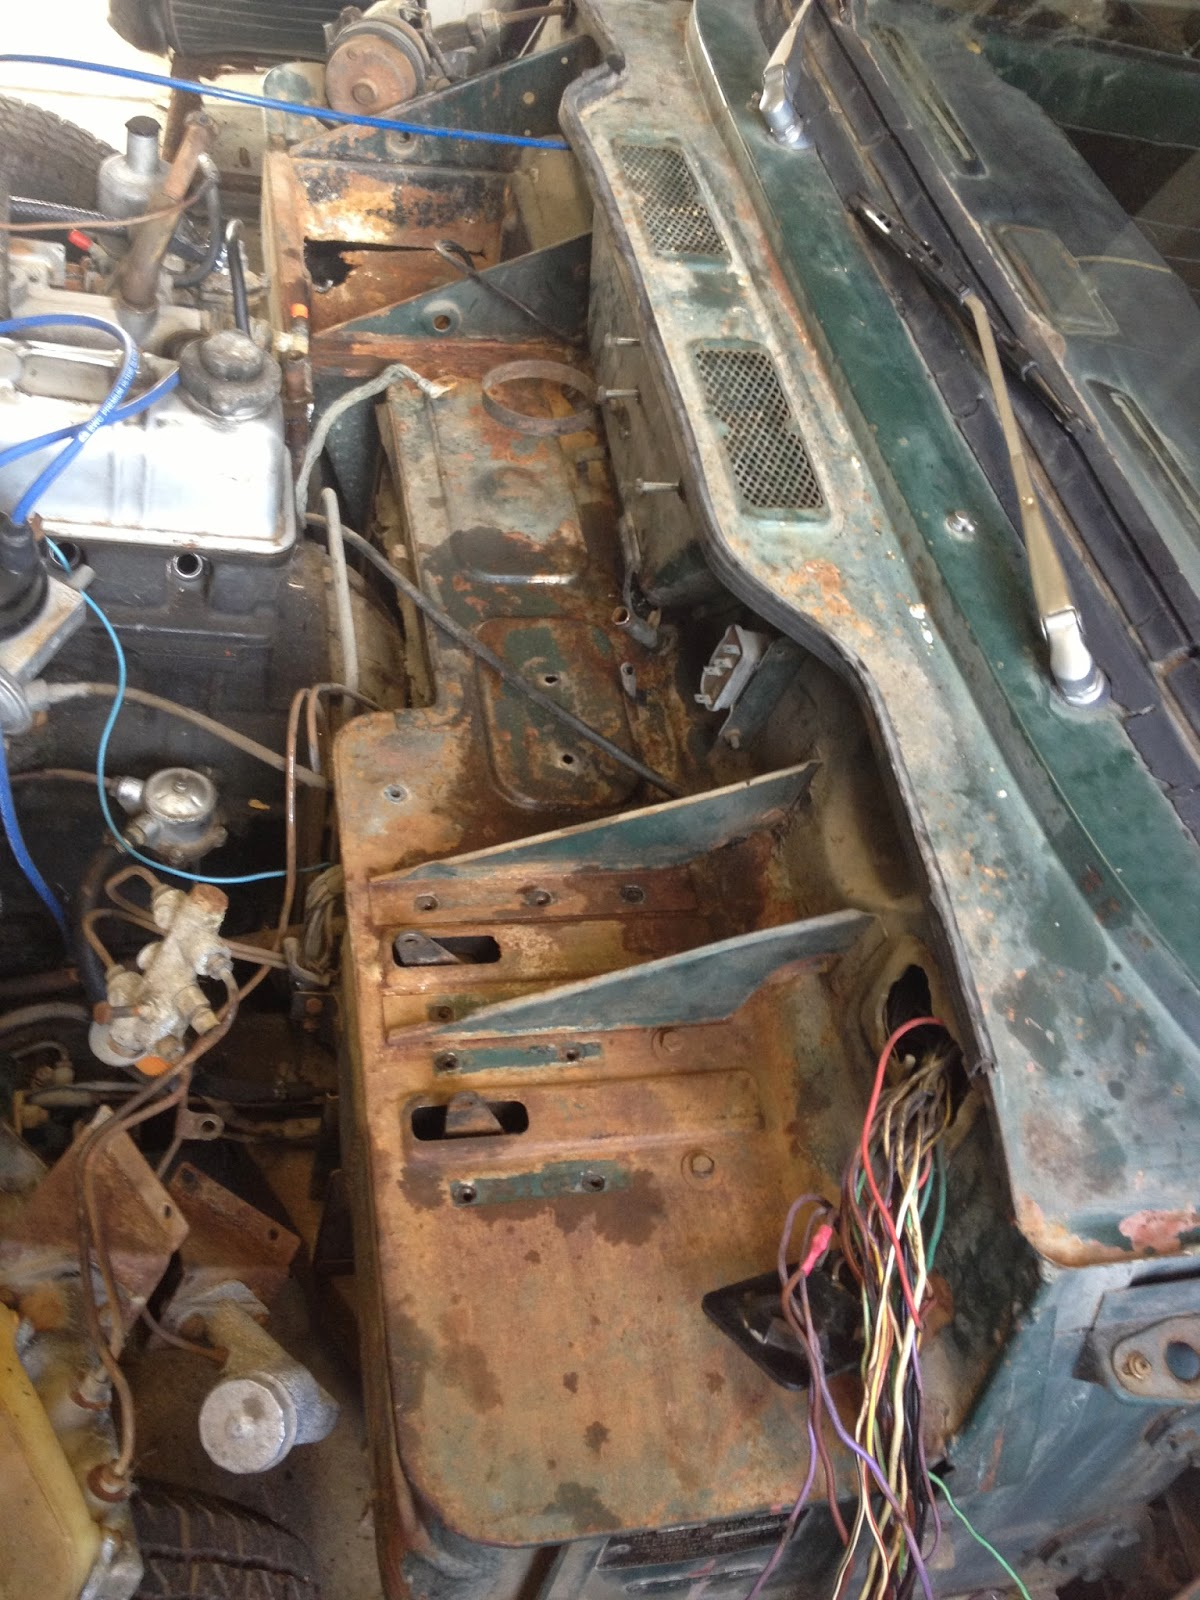 1969 Triumph Spitfire Mk3 Project Wiring Woes Here We Go Again Removing Wires From Harness After The It Was A Good Time To Remove Everything Off Of Bulkhead So That Surface Rust Can Be Addresses